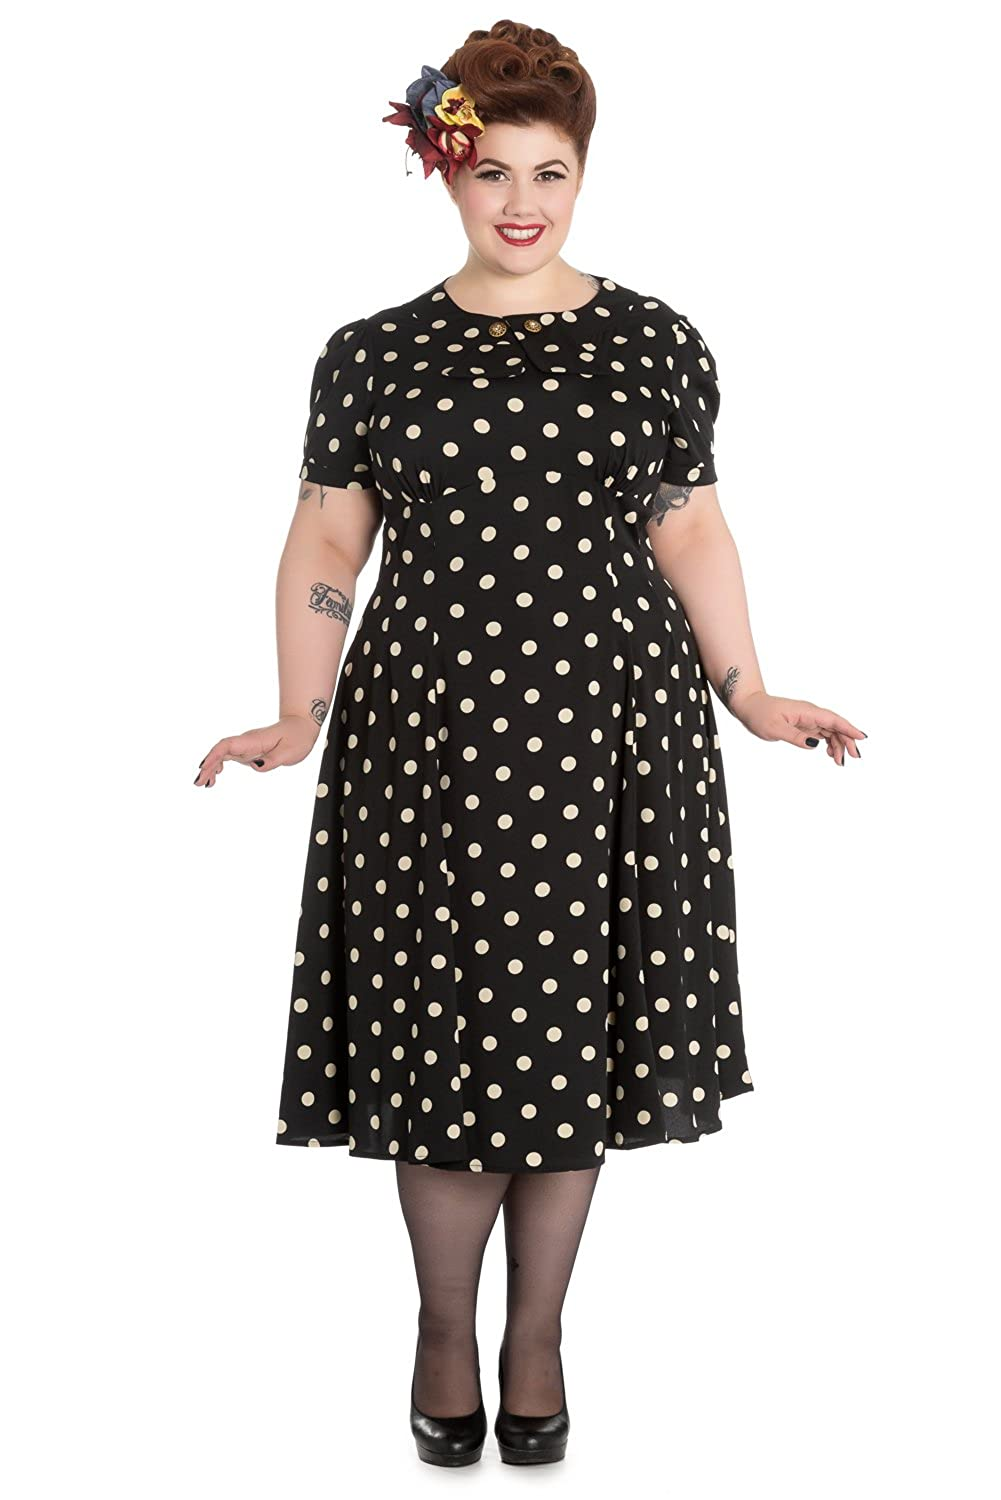 Plus Size Retro Dresses Hell Bunny Plus Size Sweet Office Lady Black Mod Polka Dot Dress $72.00 AT vintagedancer.com